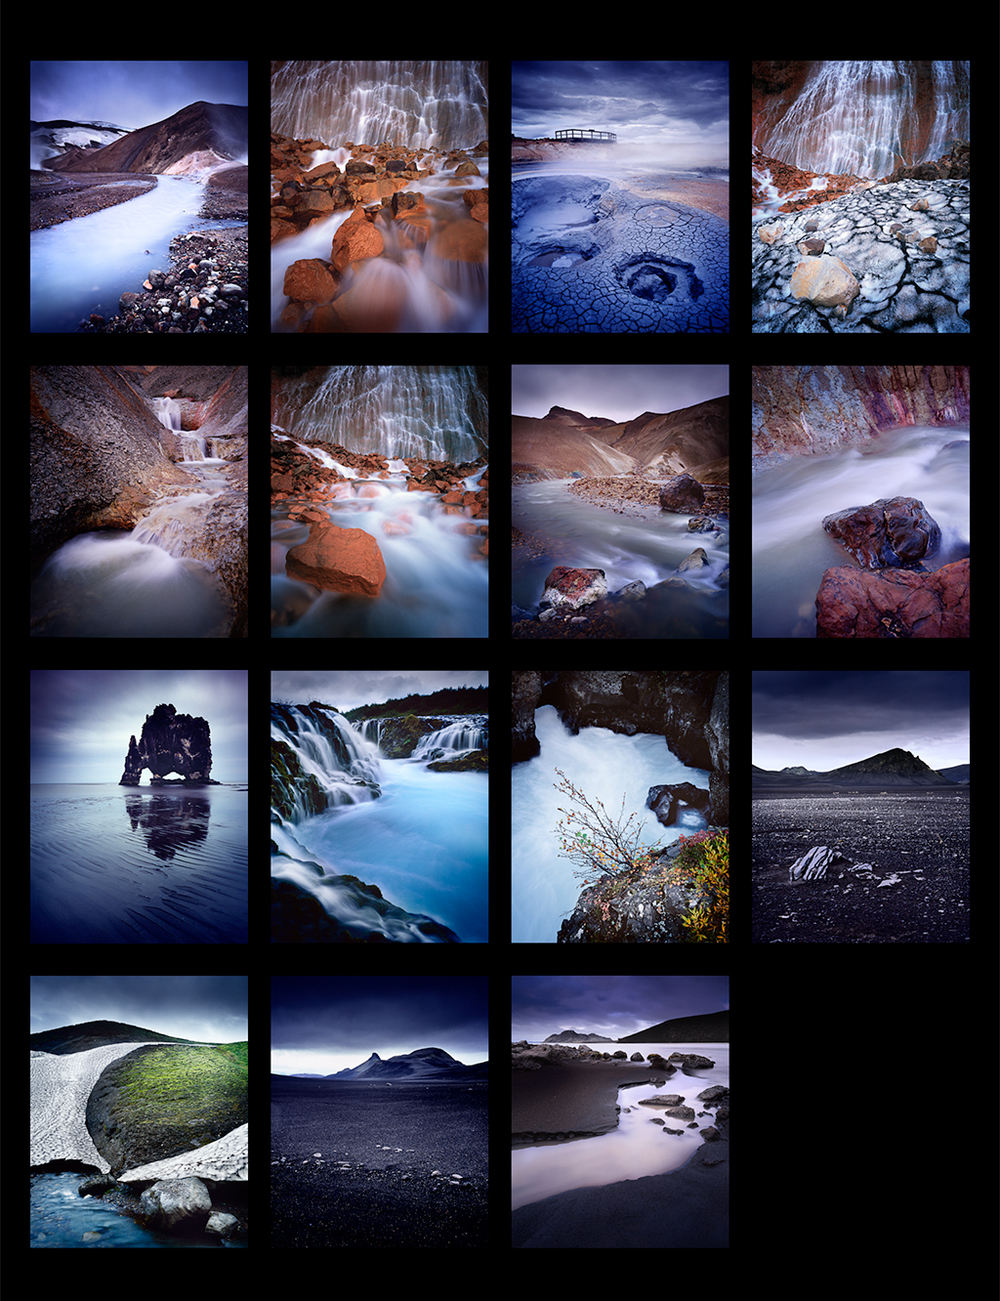 Images © Bruce Percy. Mamiya 7 camera, Fuji Velvia RVP 50 film.